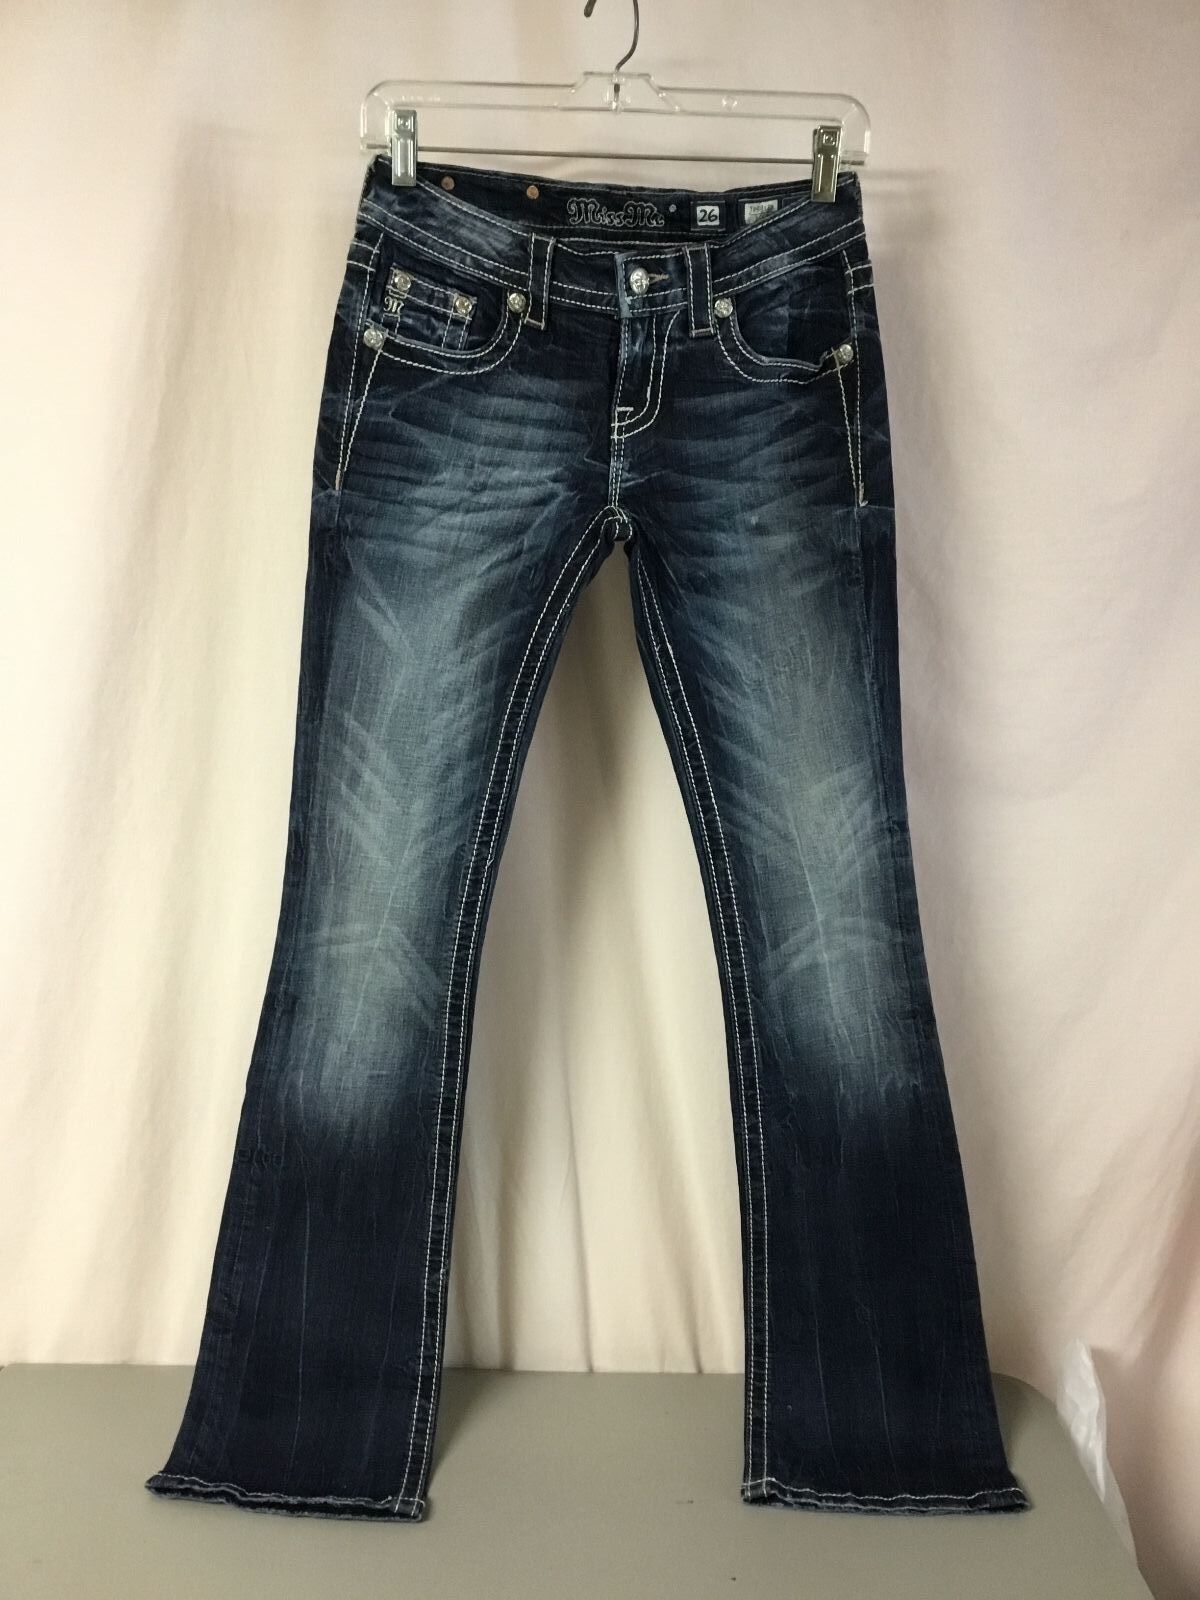 Women's Miss Me Boot Cut Jeans Size 26 x 33.5  Dark bluee P